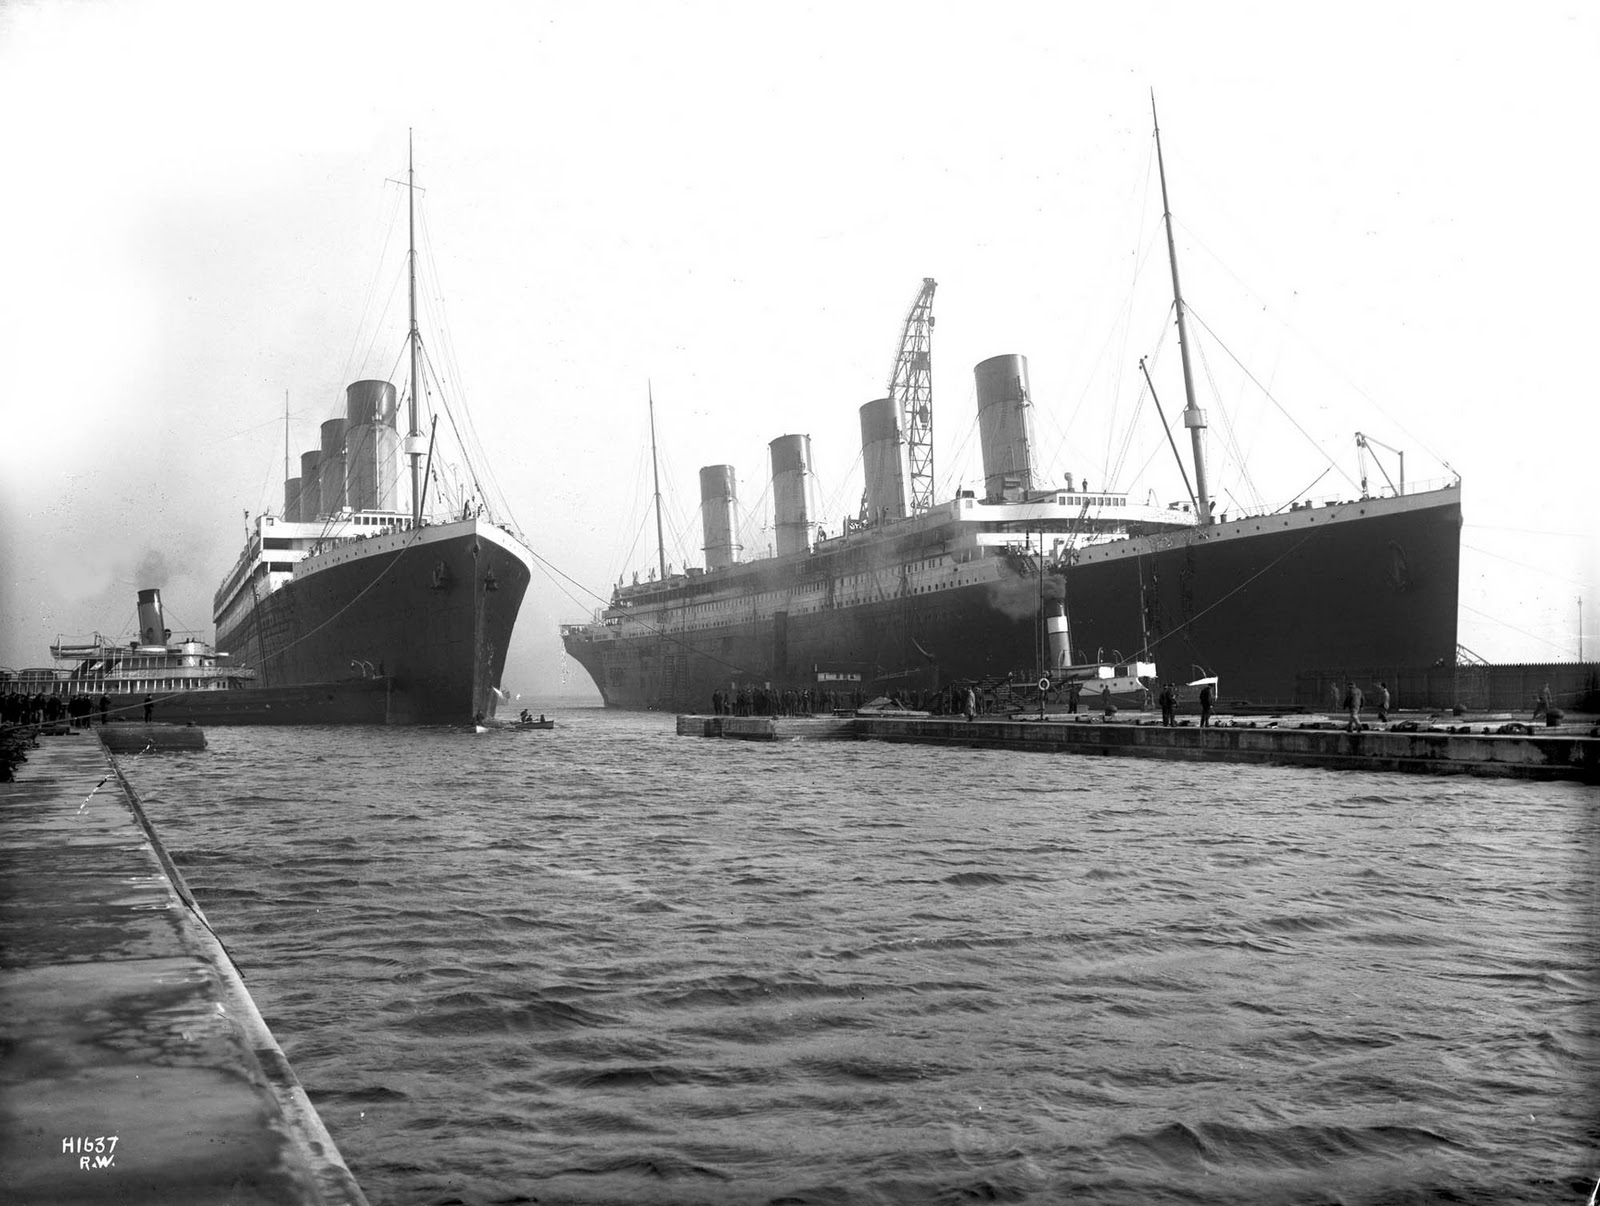 10 Reasons Why Rms Titanic May Have Been Deliberately Sunk